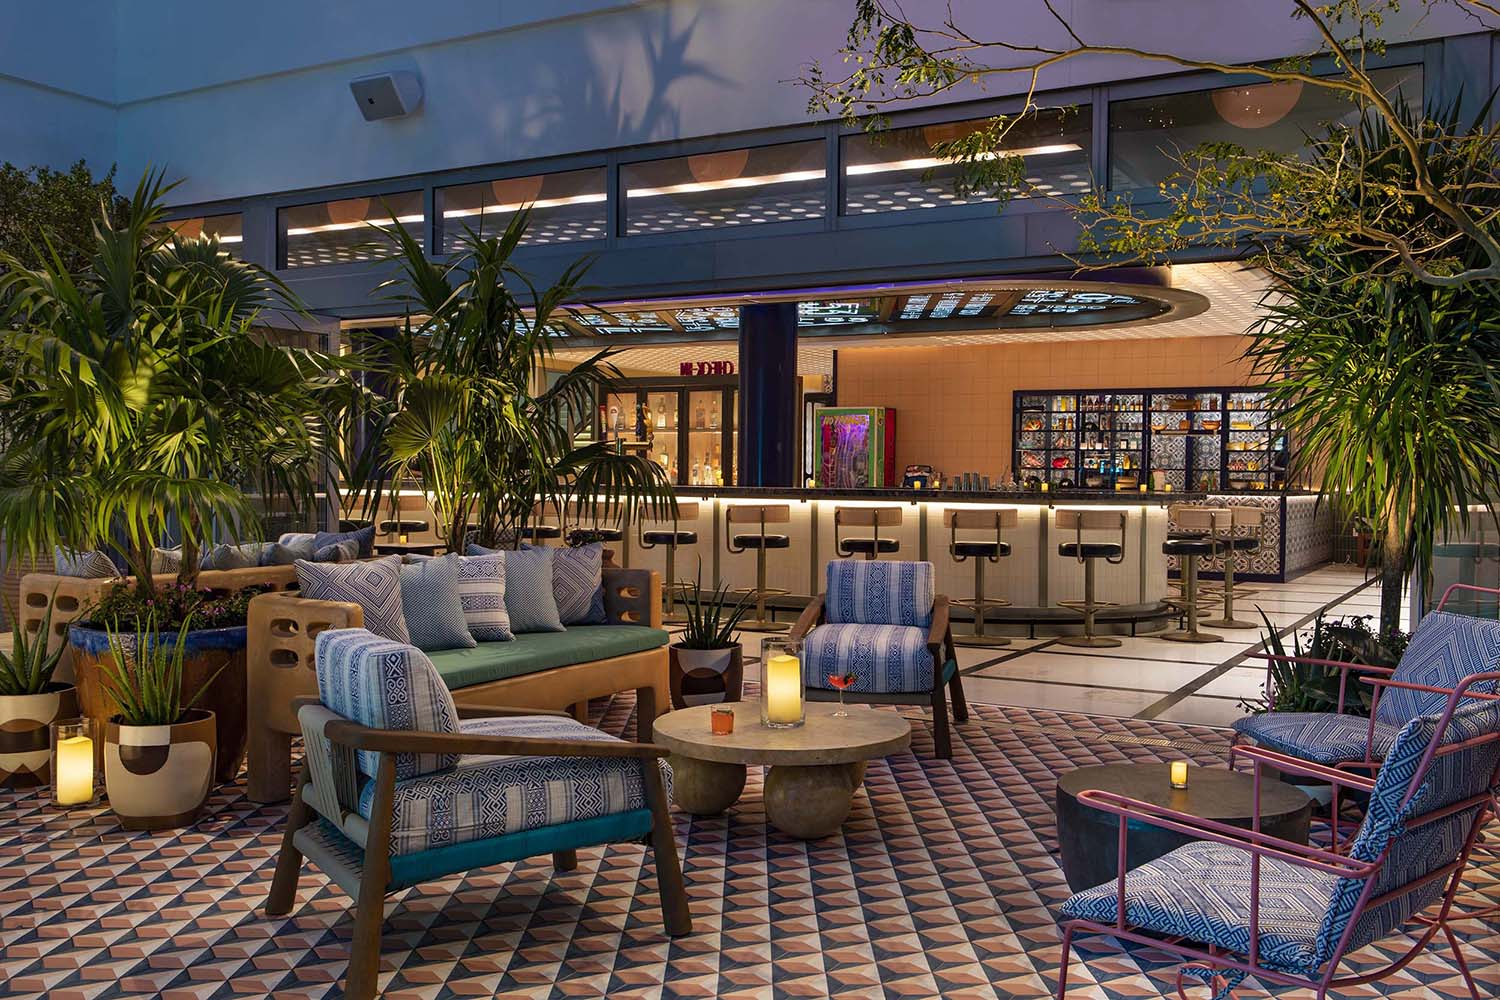 Moxy Miami South Beach Design Hotel Designed by Rockwell Group Marriott